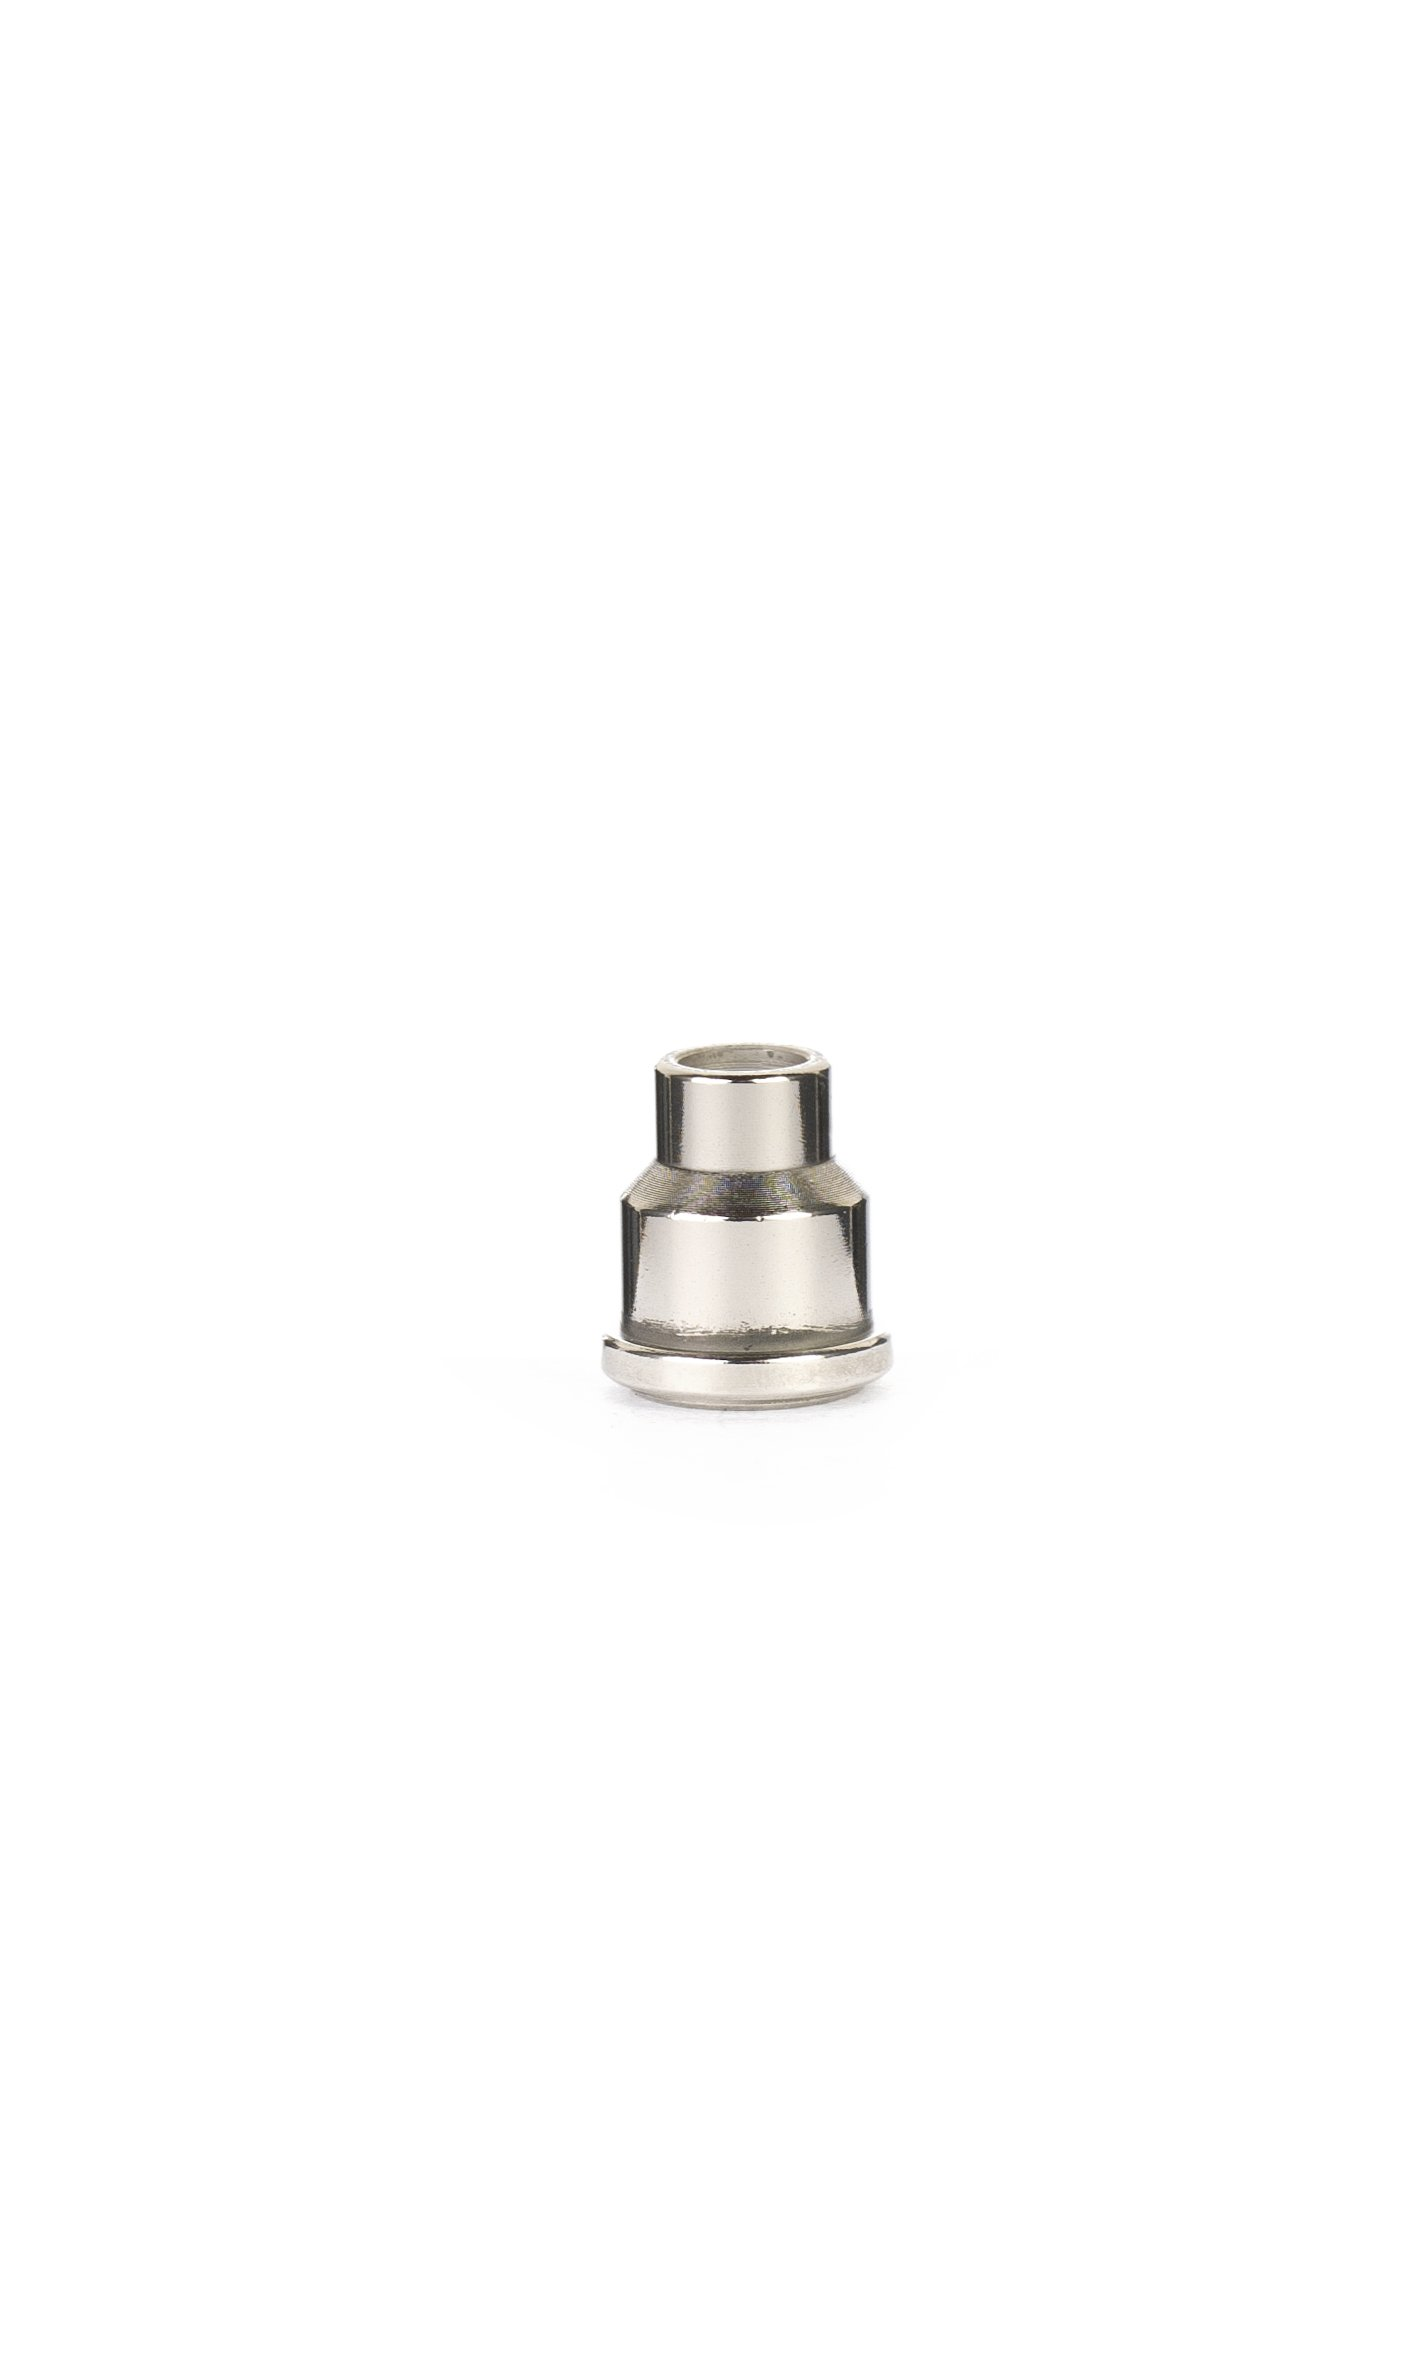 Portasol Ppt-12 ProPiezo 75 Flame Tip, Nickel and Iron Plated Brass, Small